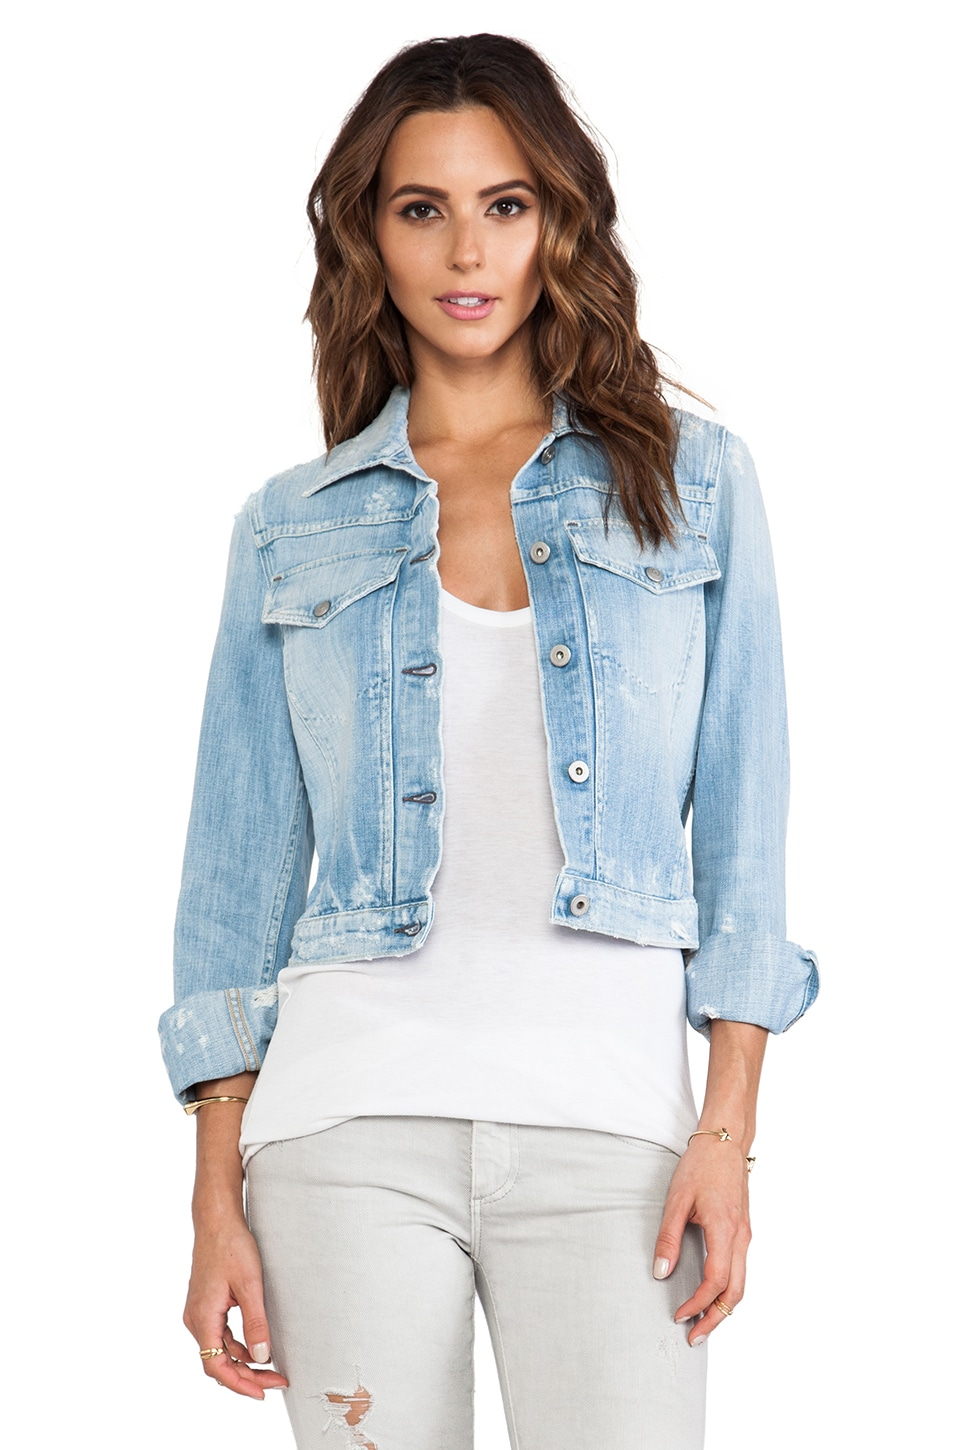 Citizens of Humanity Borderline Jacket in Summer Fling